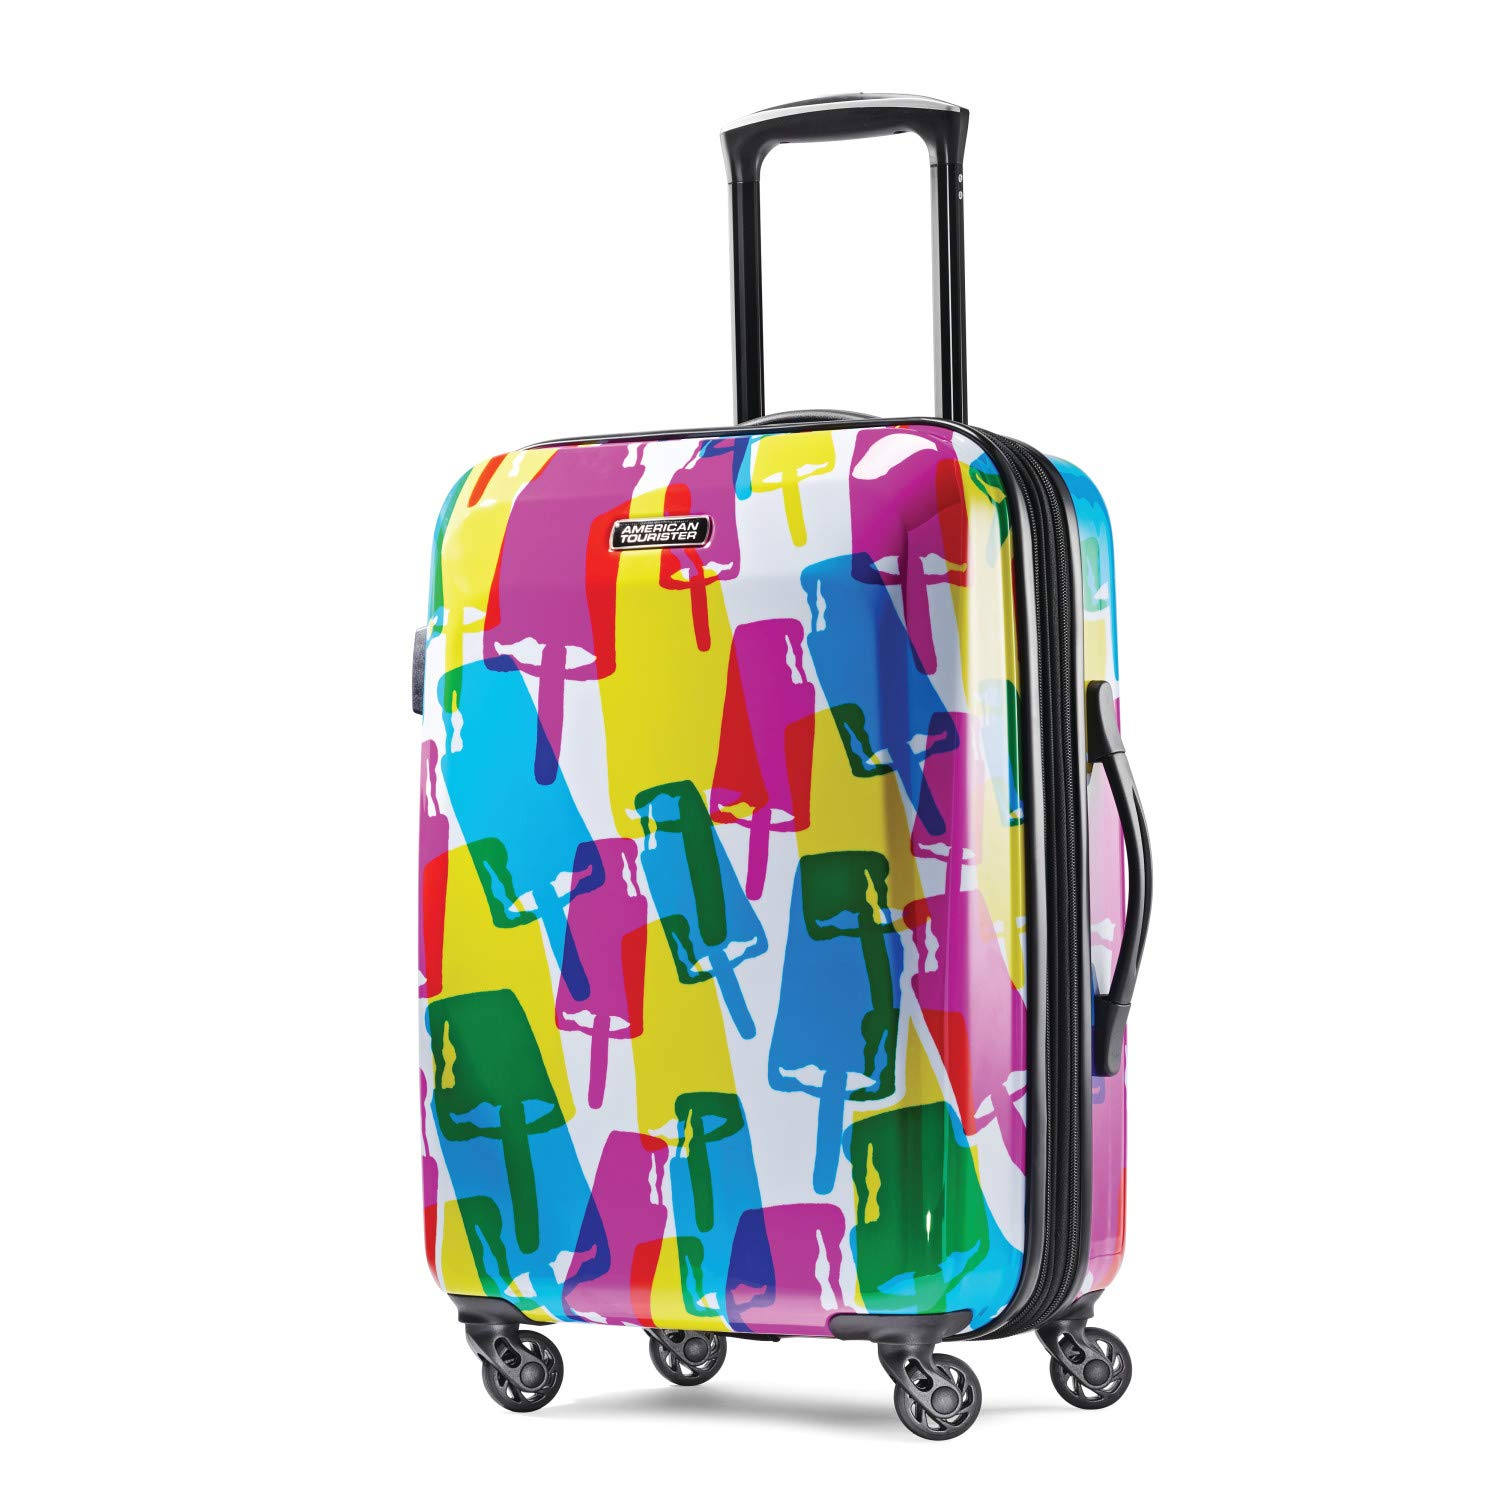 9355330f3a91 American Tourister Moonlight Expandable Hardside Luggage with Spinner Wheels